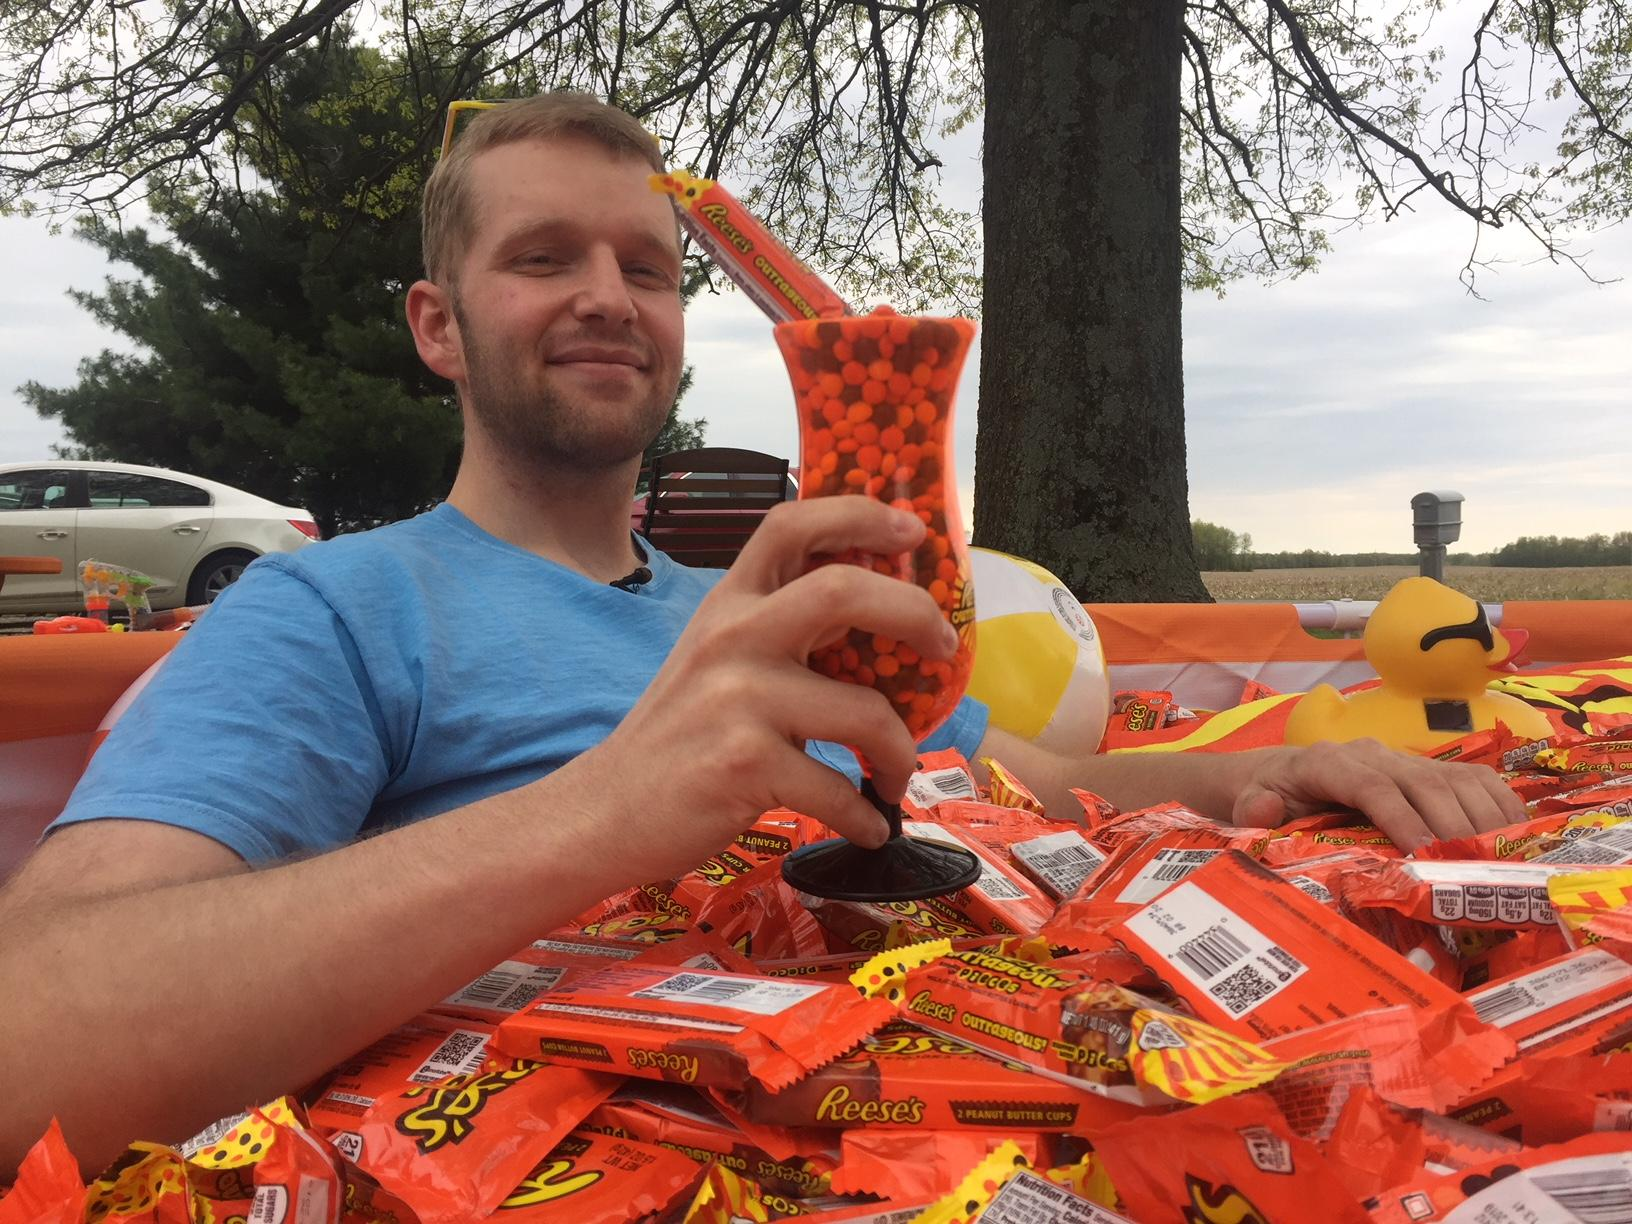 Reese's gave Jon Ernst the surprise of a lifetime to thank him for his viral photo on Reddit. (WSYX/WTTE)